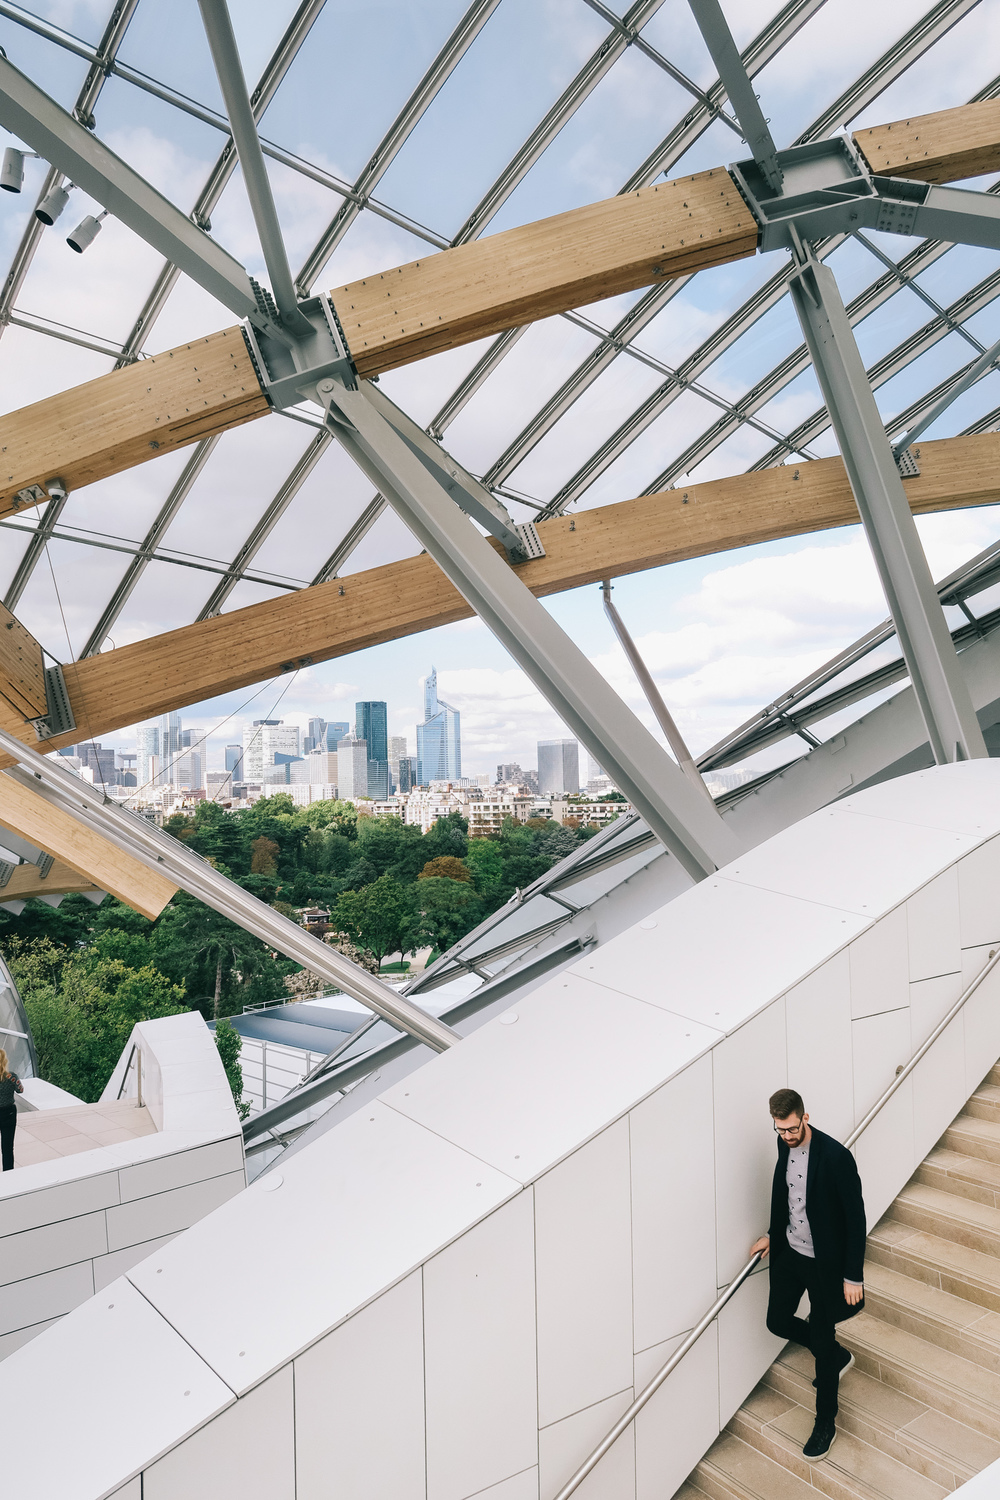 Fondation Louis Vuitton in Paris, wearing COS coat, Kenzo sweatshirt, Frame Denim, and Ecco shoes